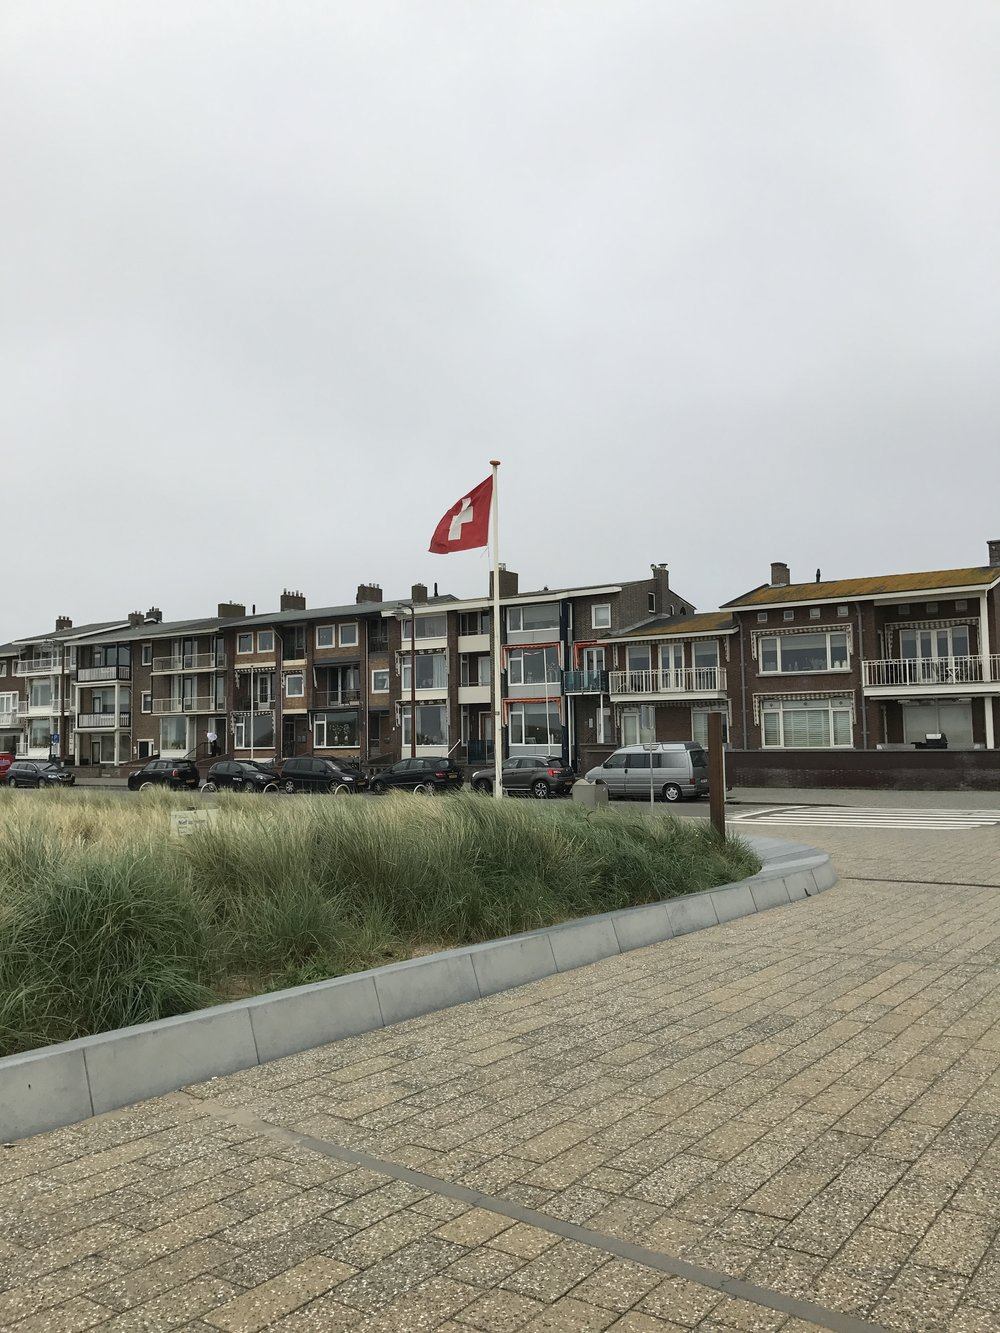 Arriving at the township of Katwijk-aan-Zee.